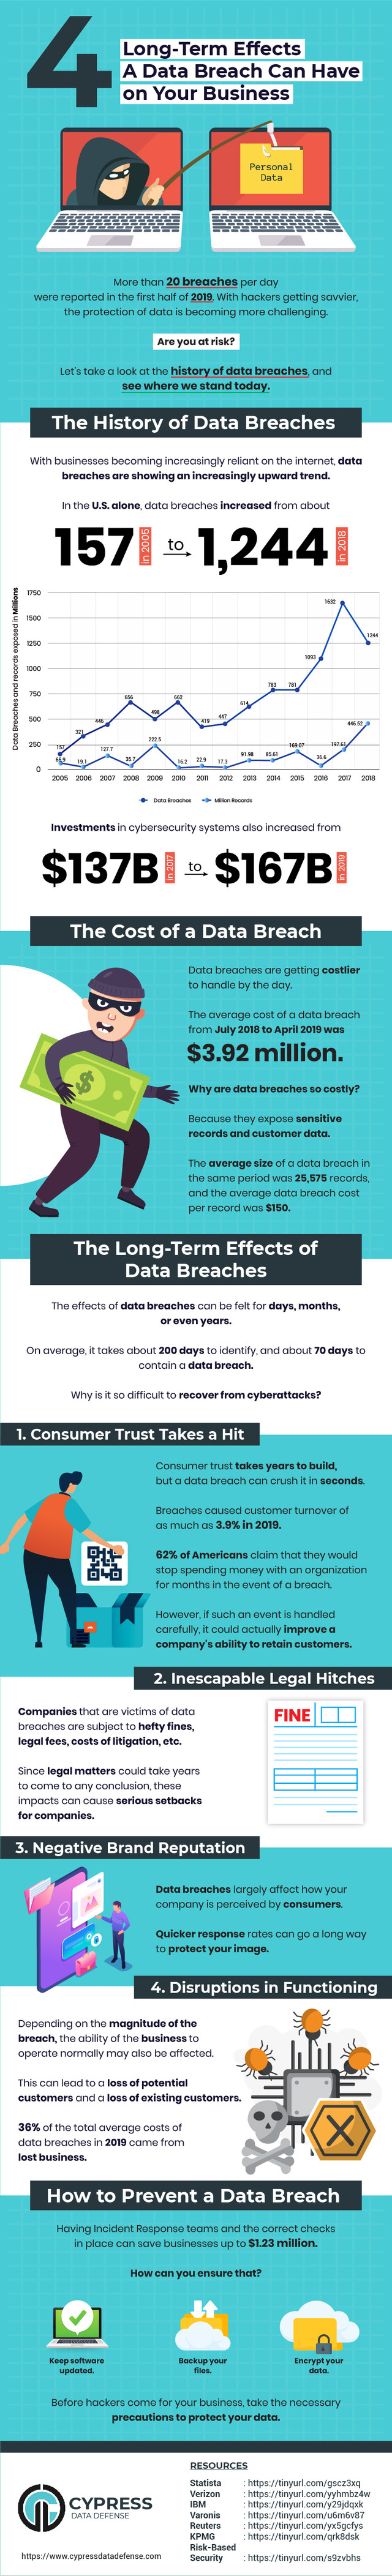 Must-Know Statistics About The Long-Term Effects of a Data Breach